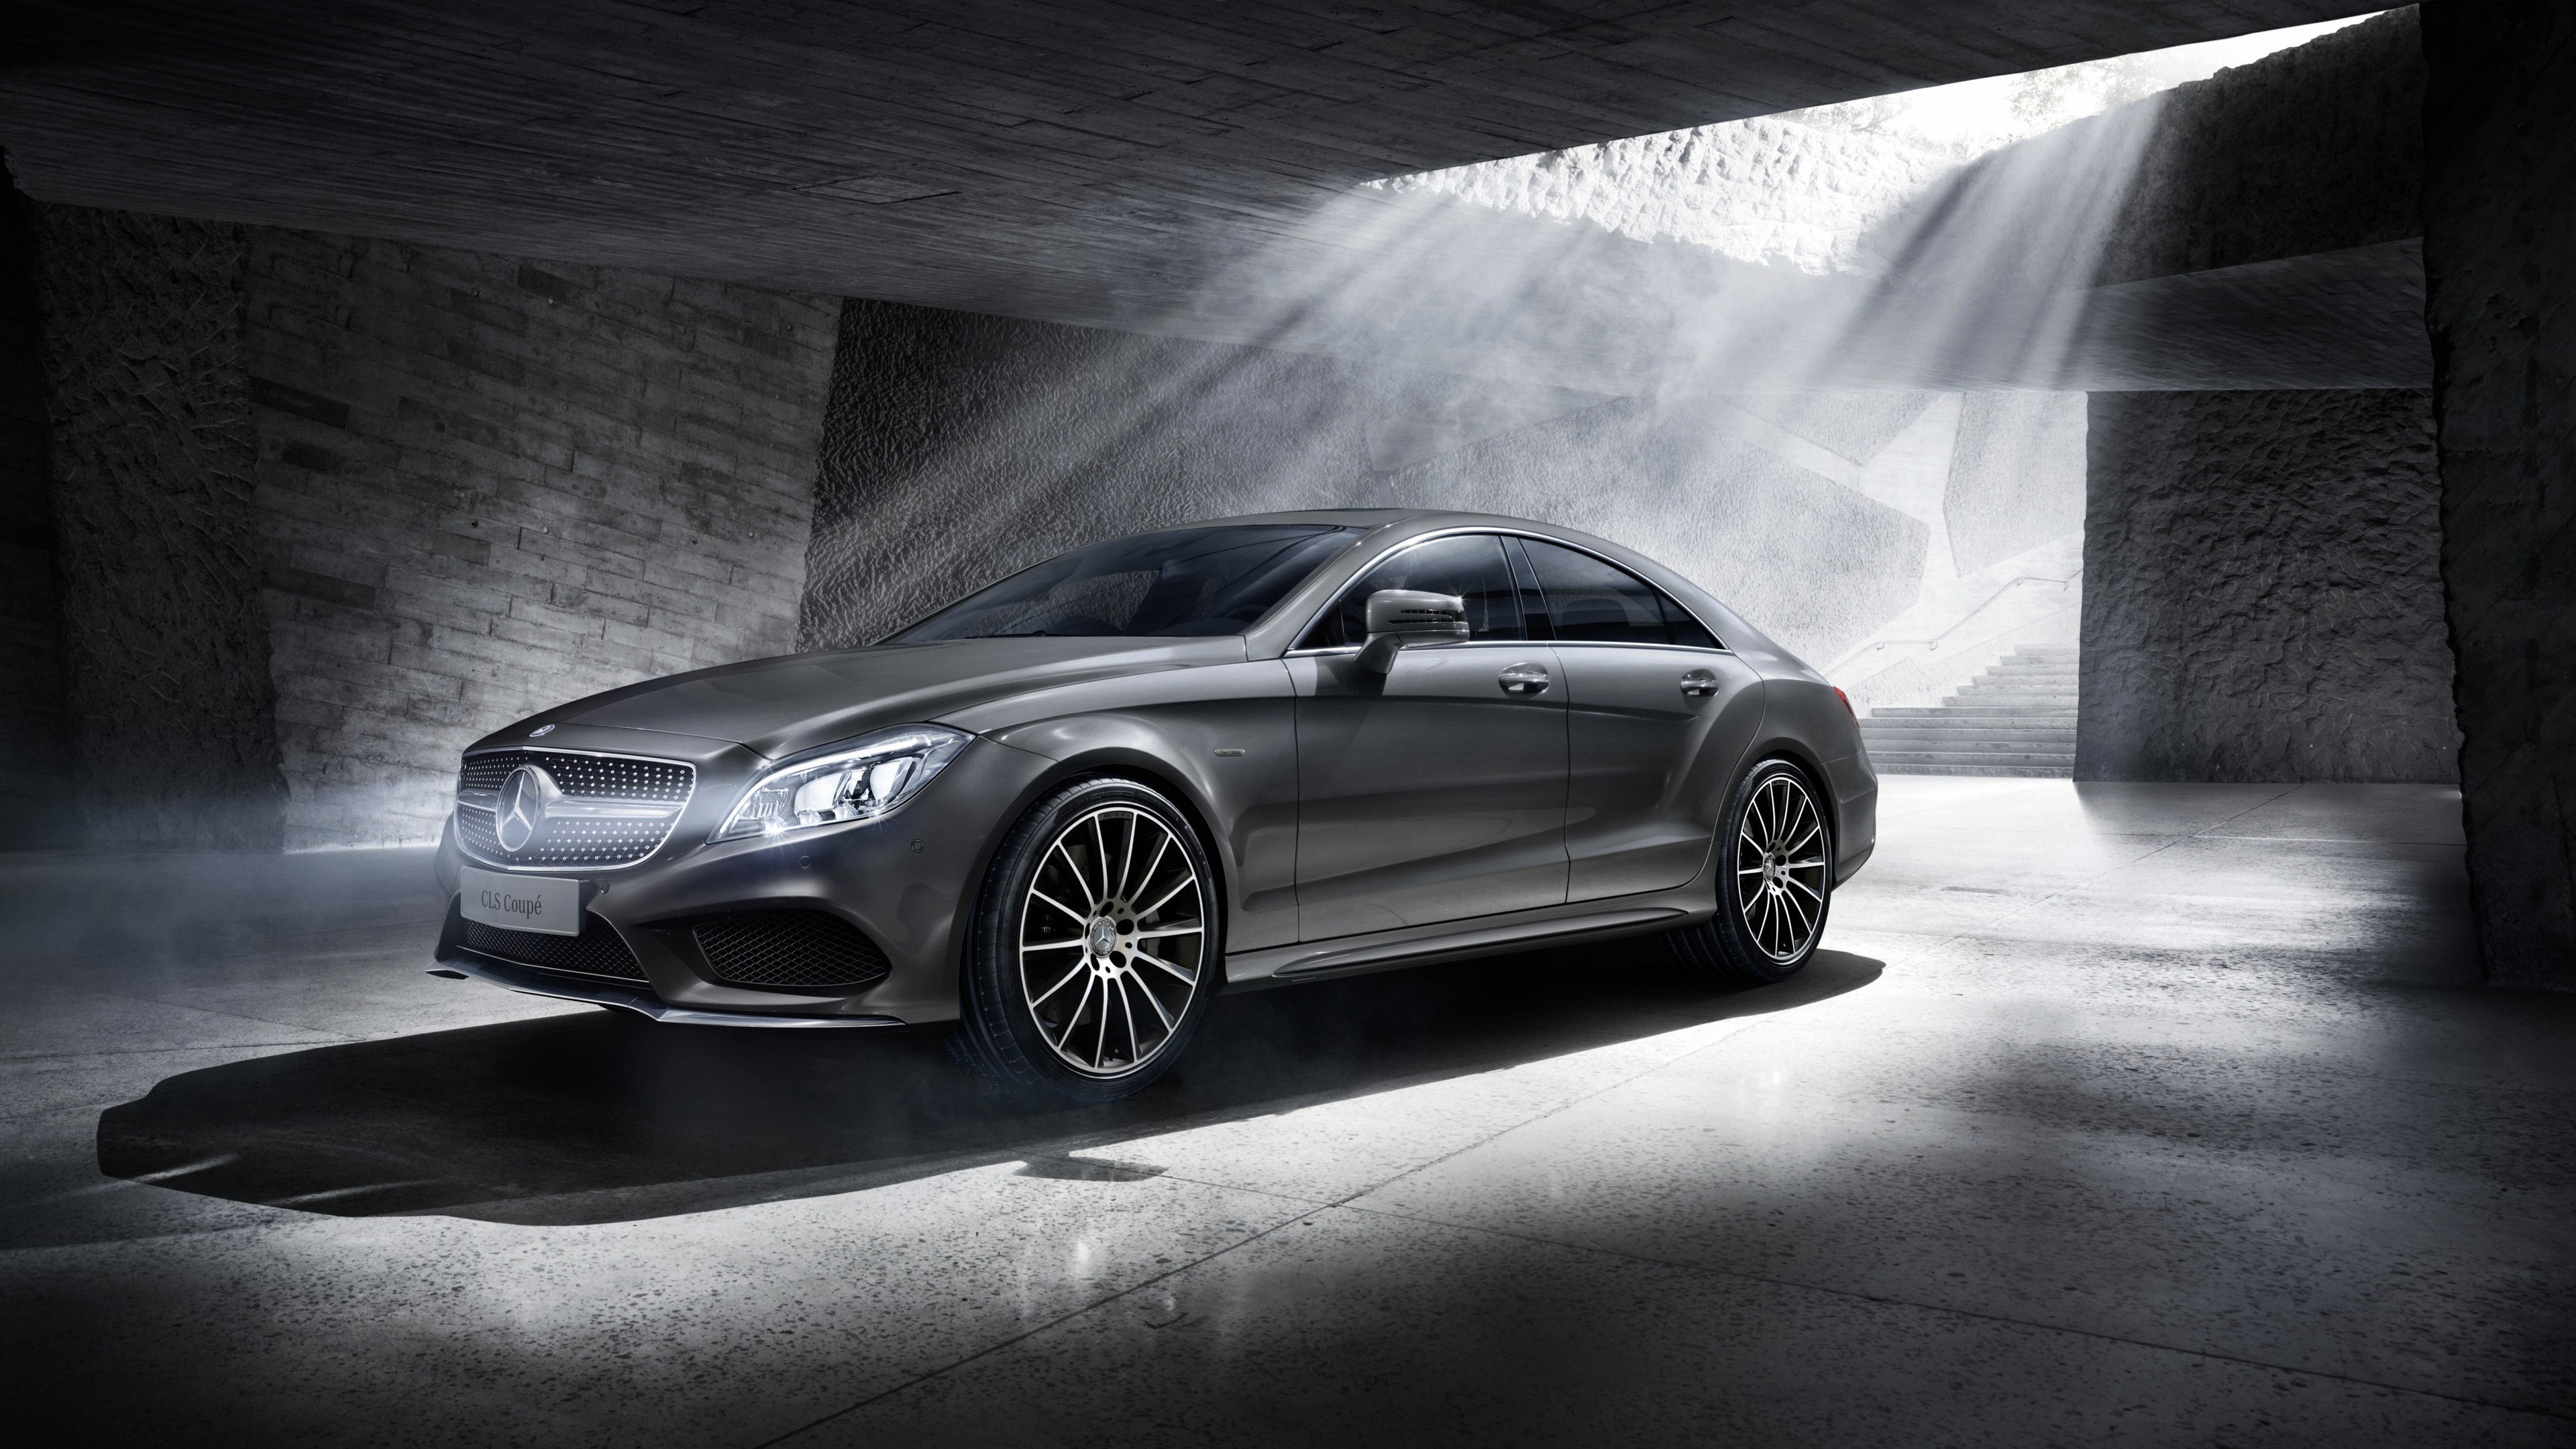 2016 mercedes benz cls coupe final edition wallpaper hd. Black Bedroom Furniture Sets. Home Design Ideas